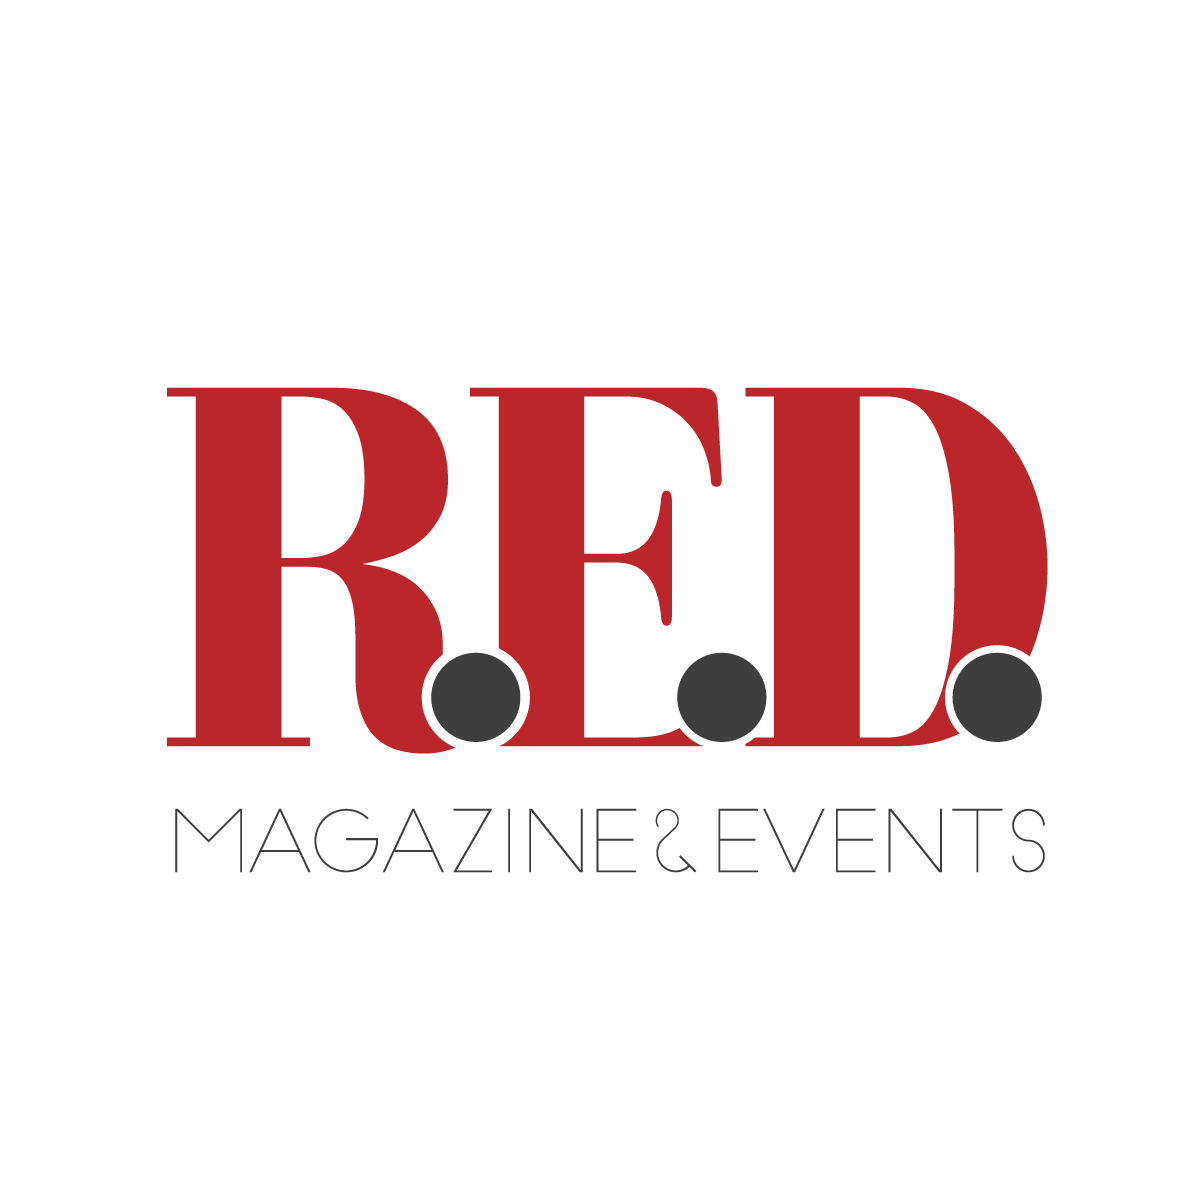 Red Magazine & Events